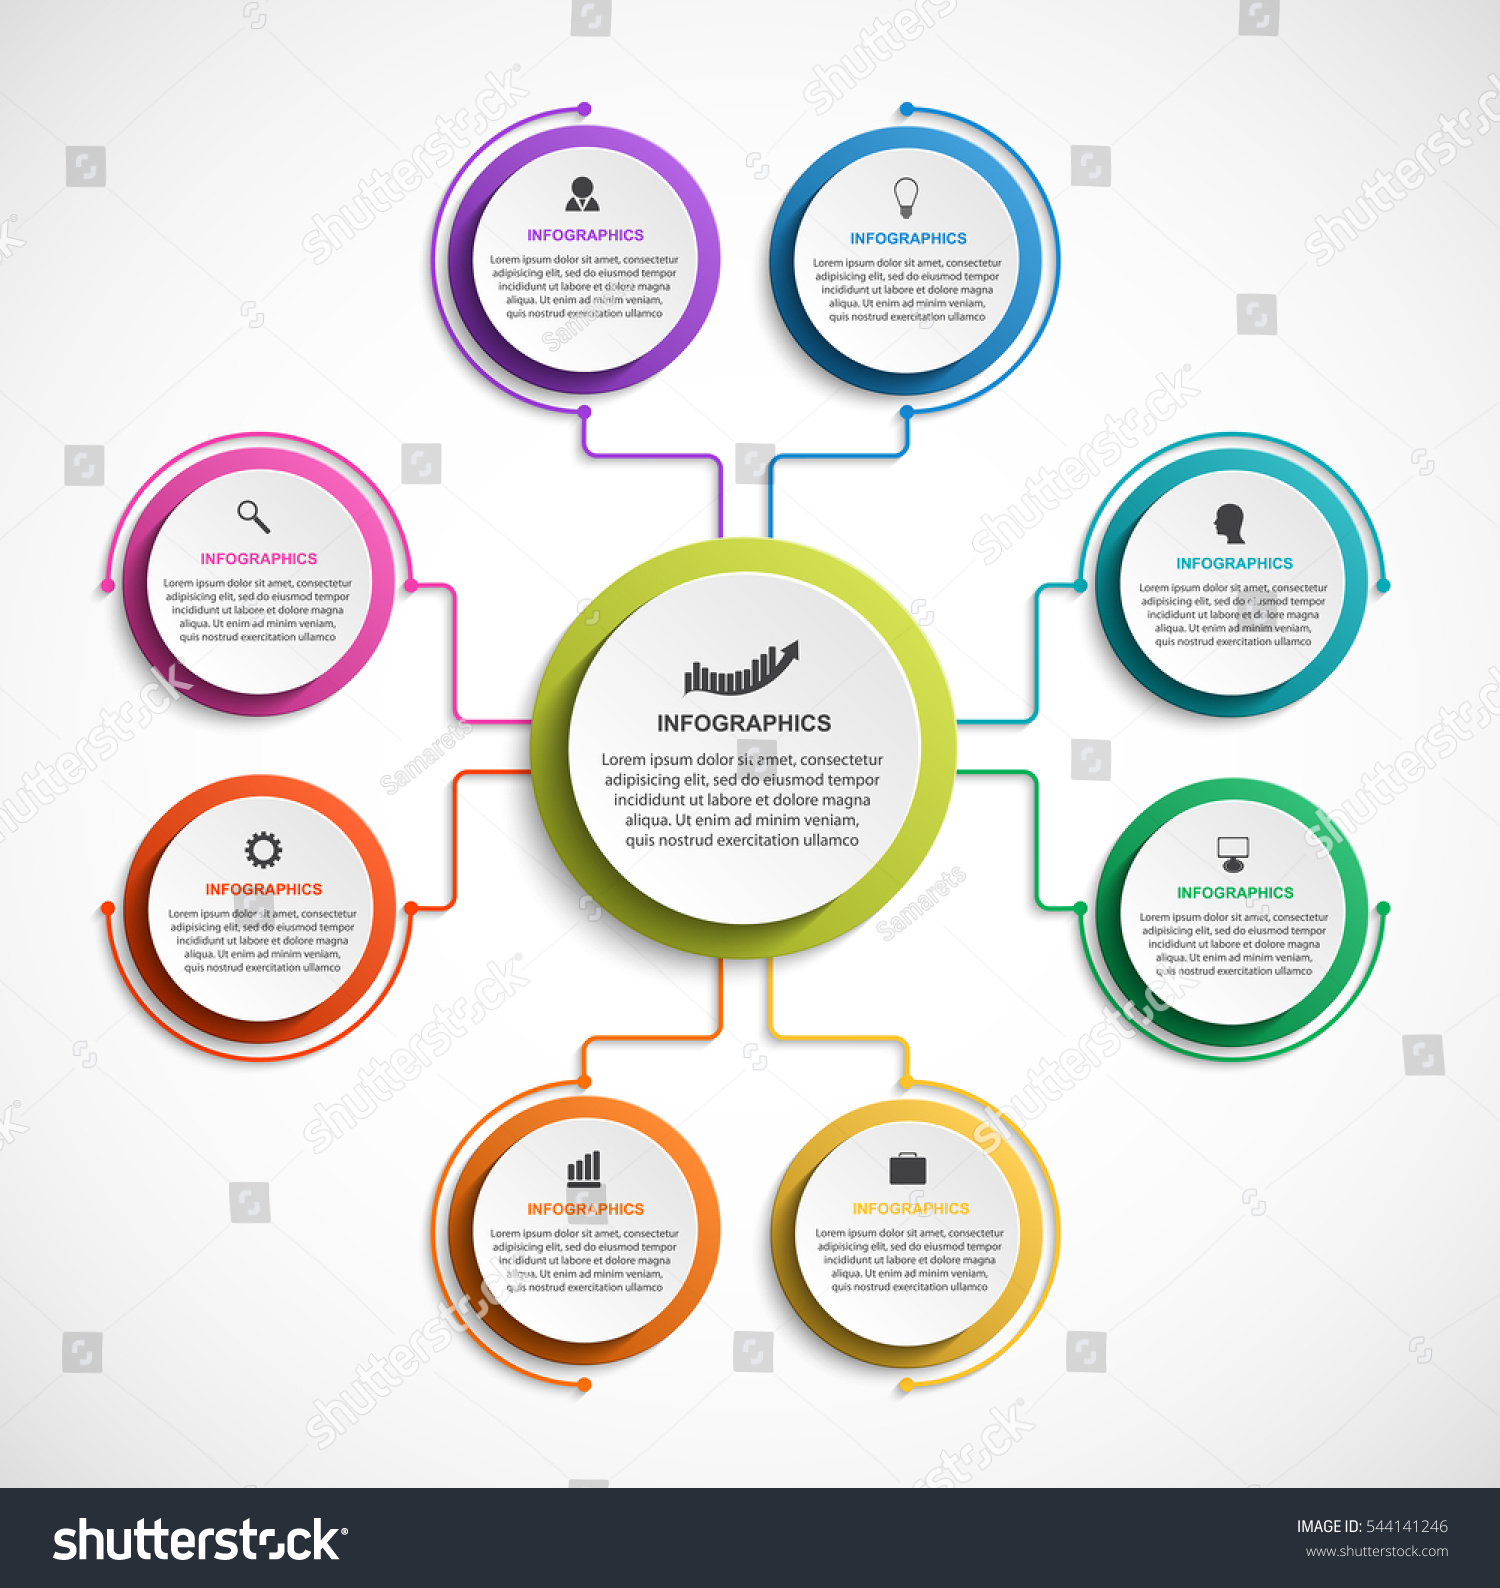 infographic design organization chart template stock vector 544141246 shutterstock. Black Bedroom Furniture Sets. Home Design Ideas